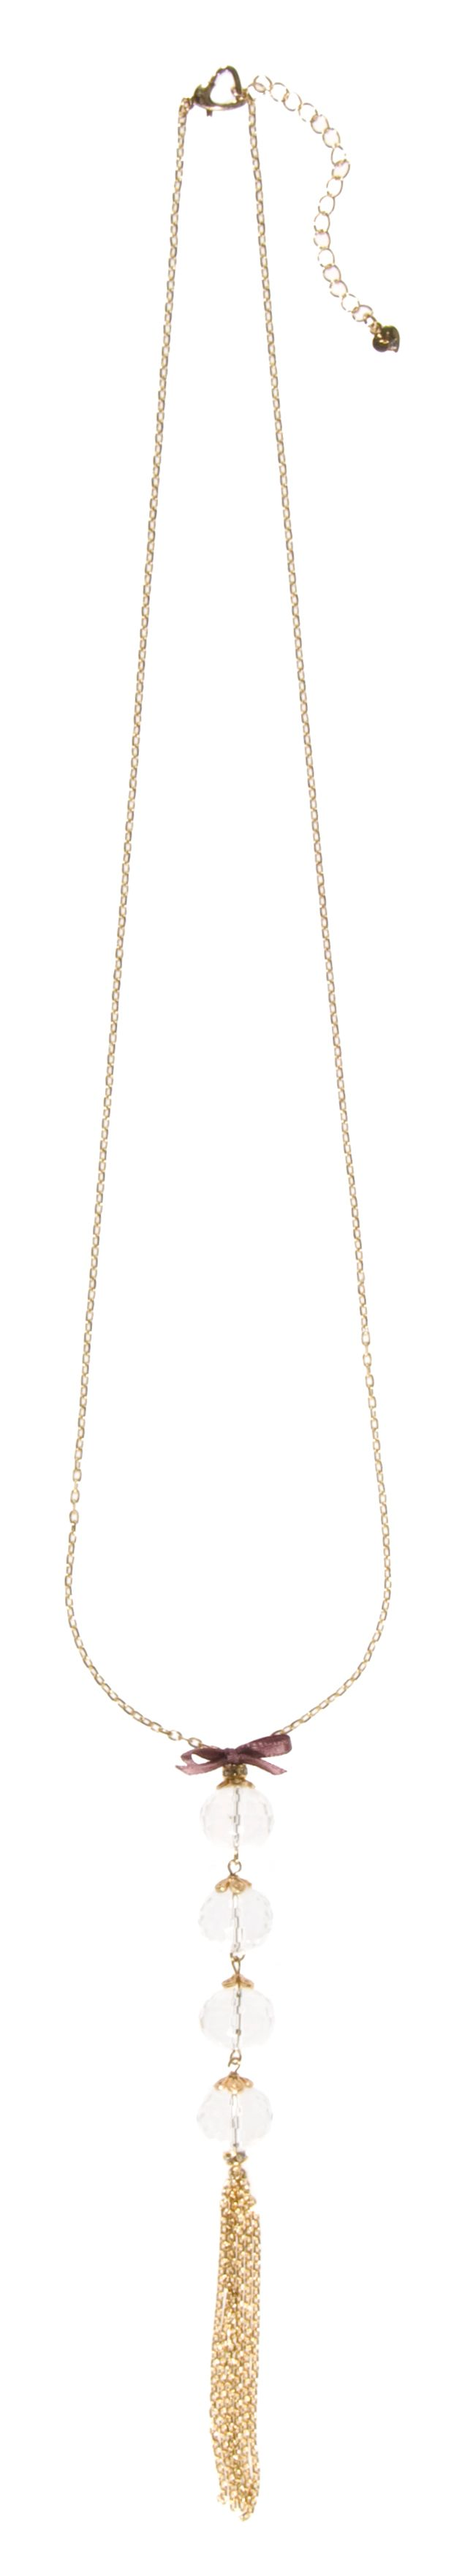 Martine Wester Lariat Necklace